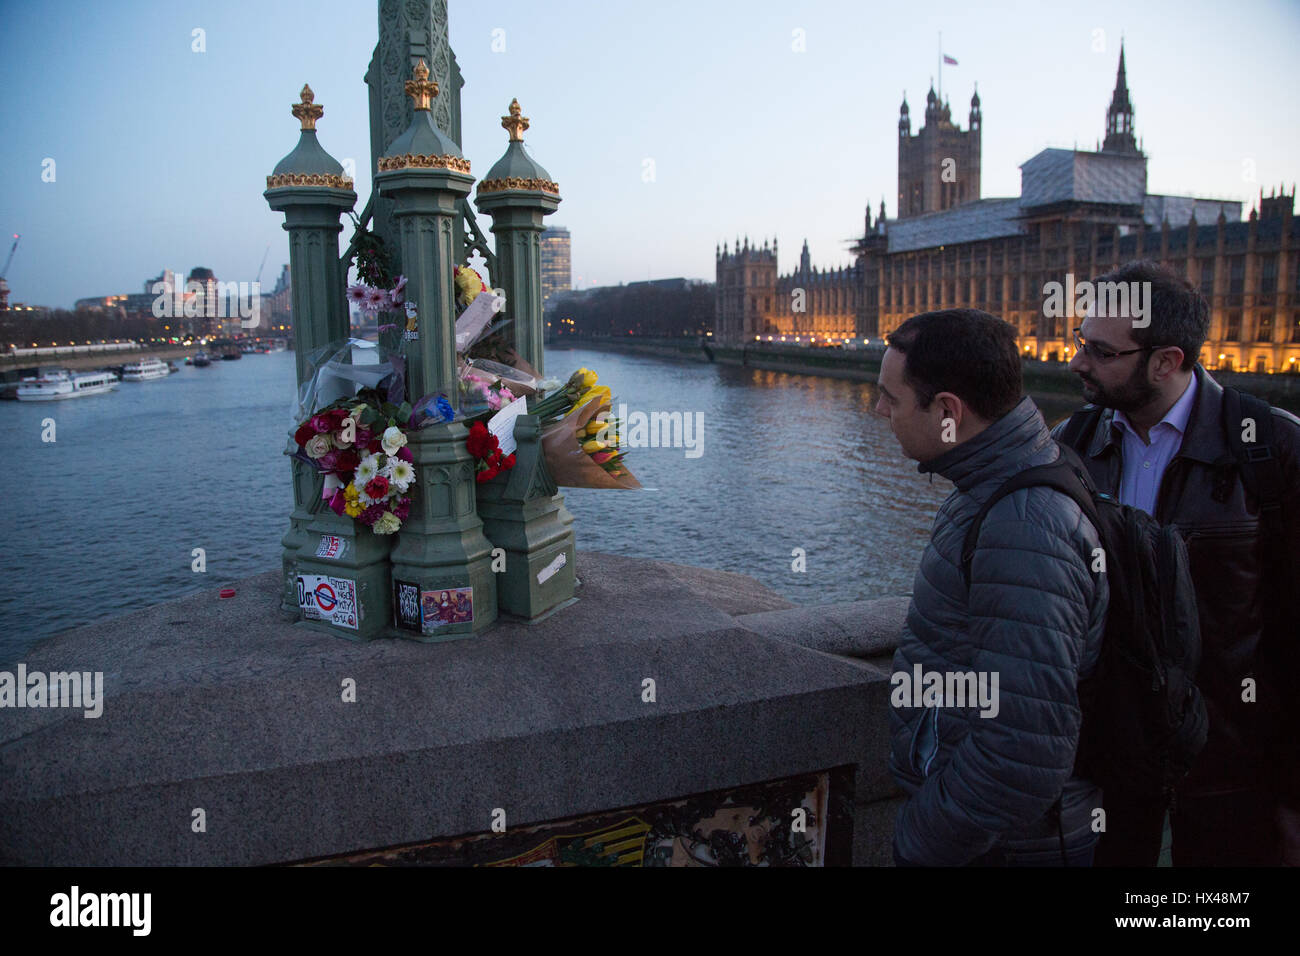 London, UK. 24th Mar, 2017. Two Men look at floral tributes on Westmister bridge folowing Wednesday's attack - Stock Image